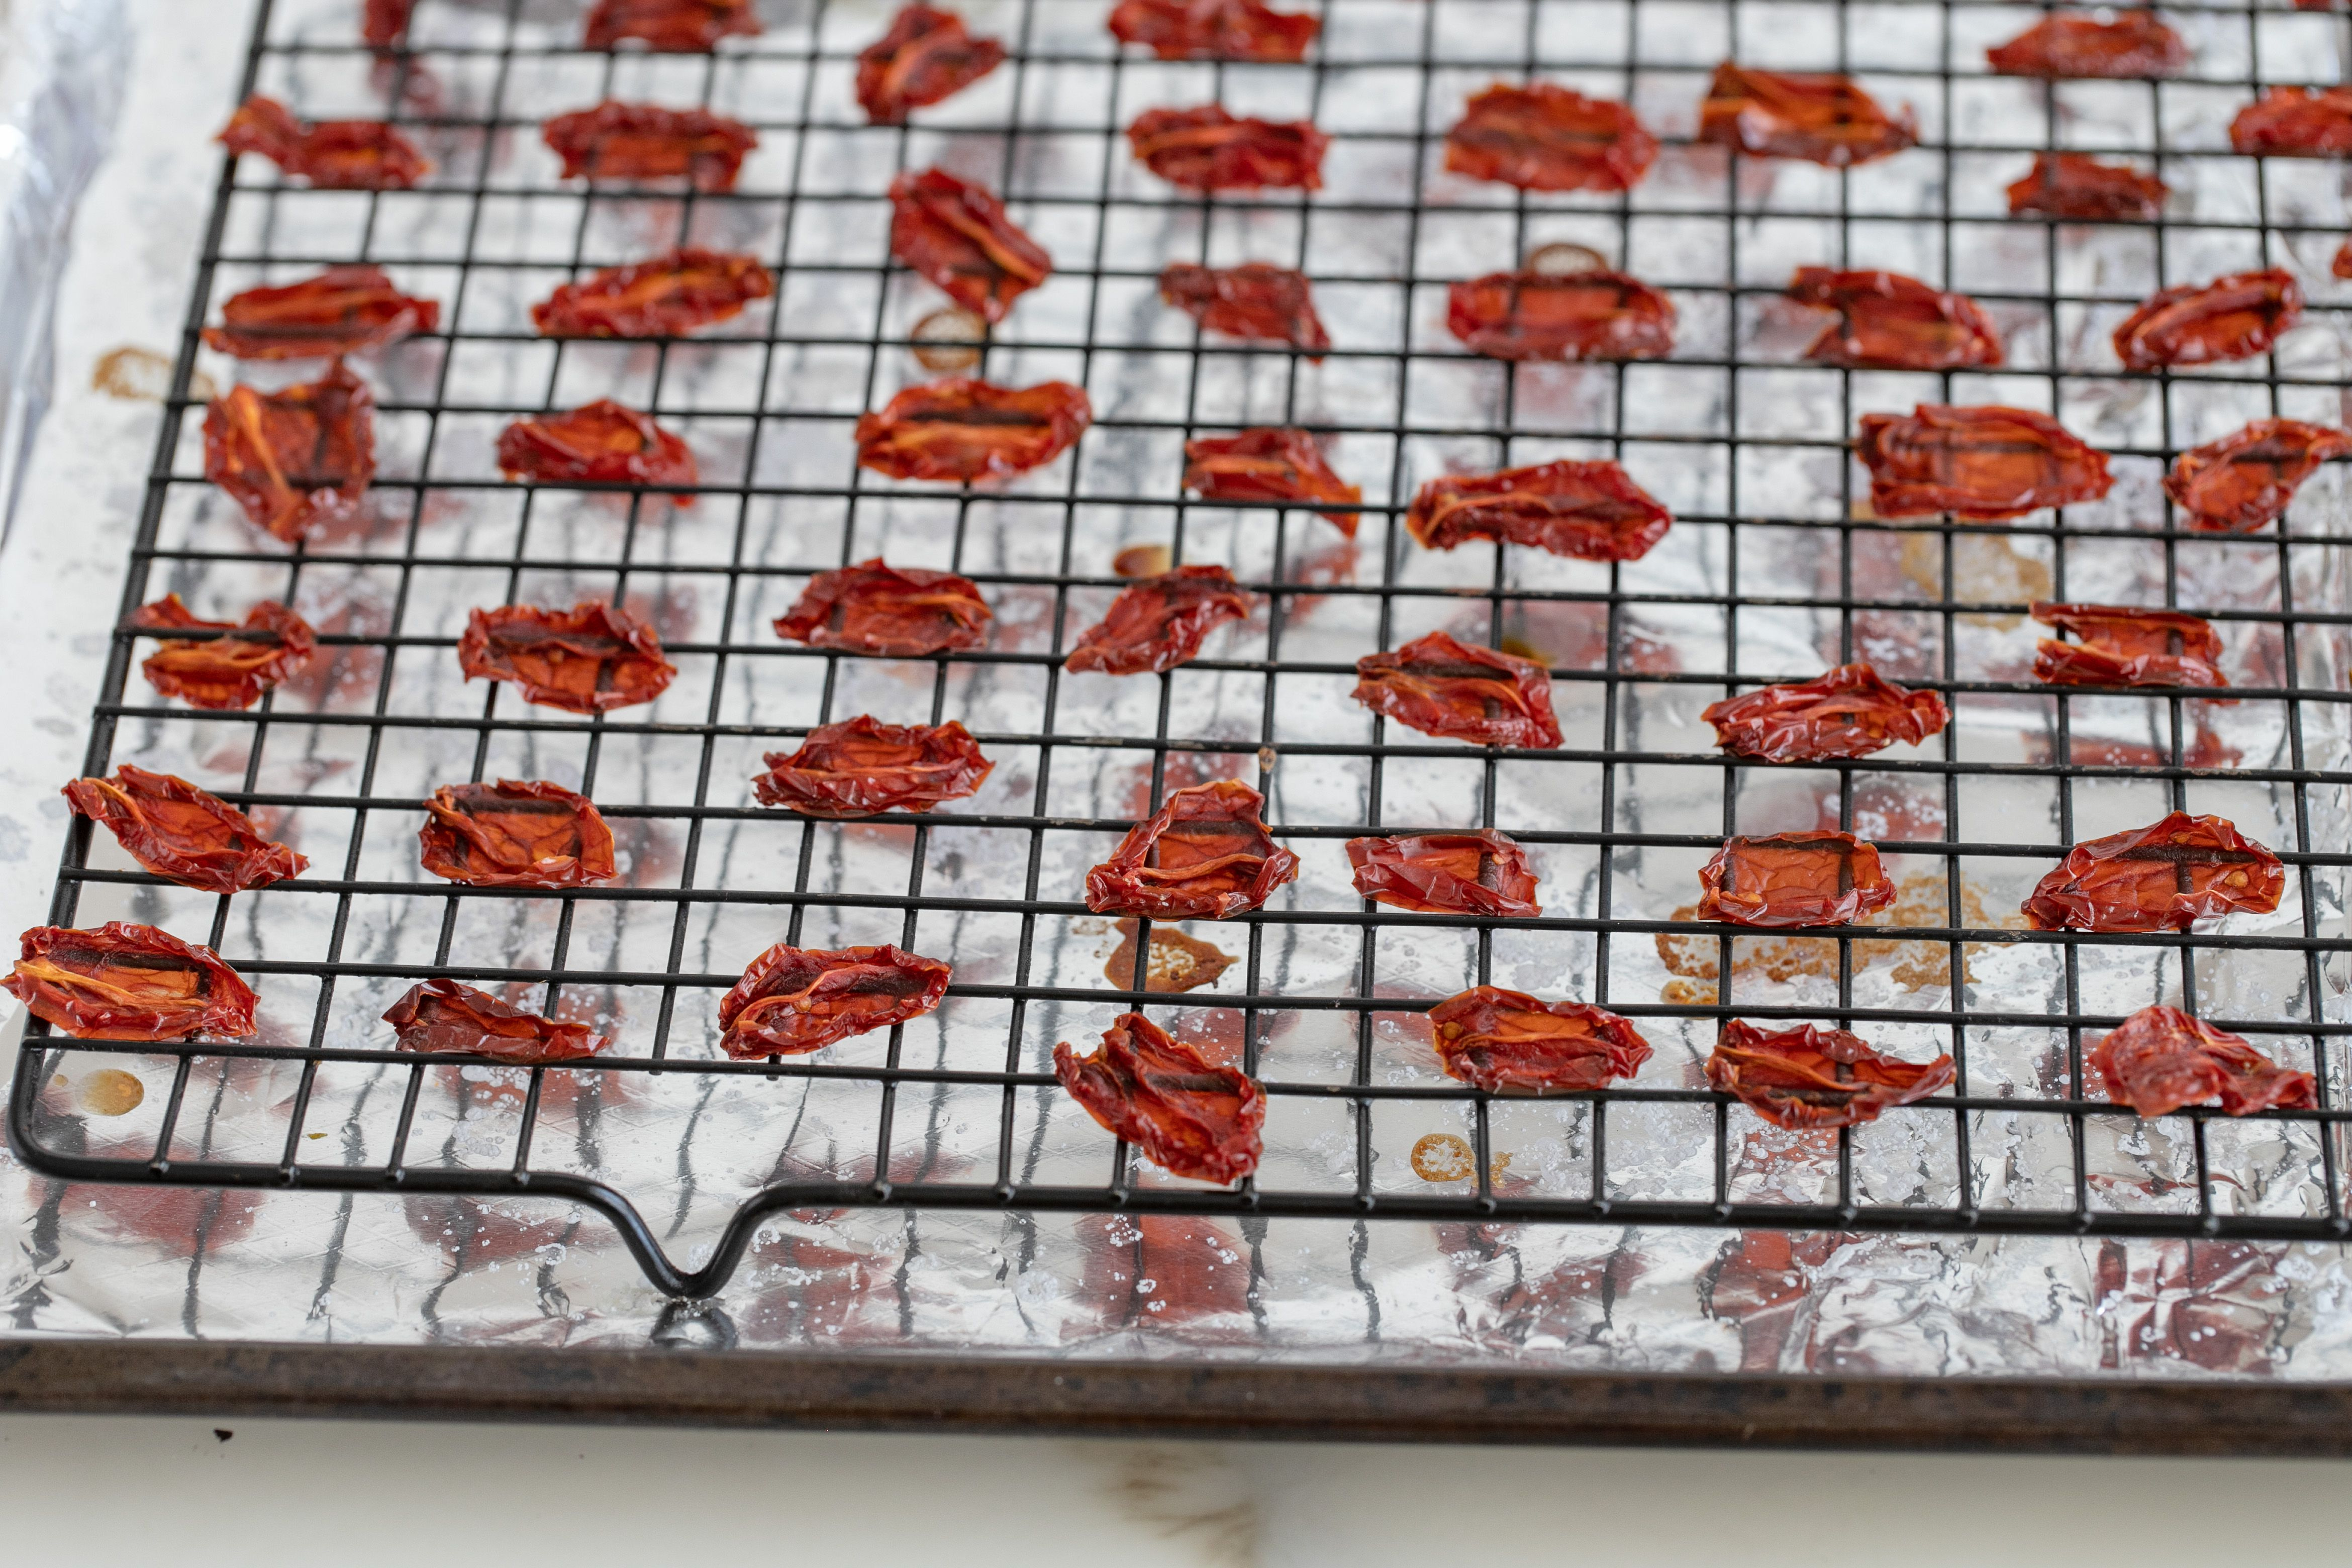 Oven sundried tomatoes